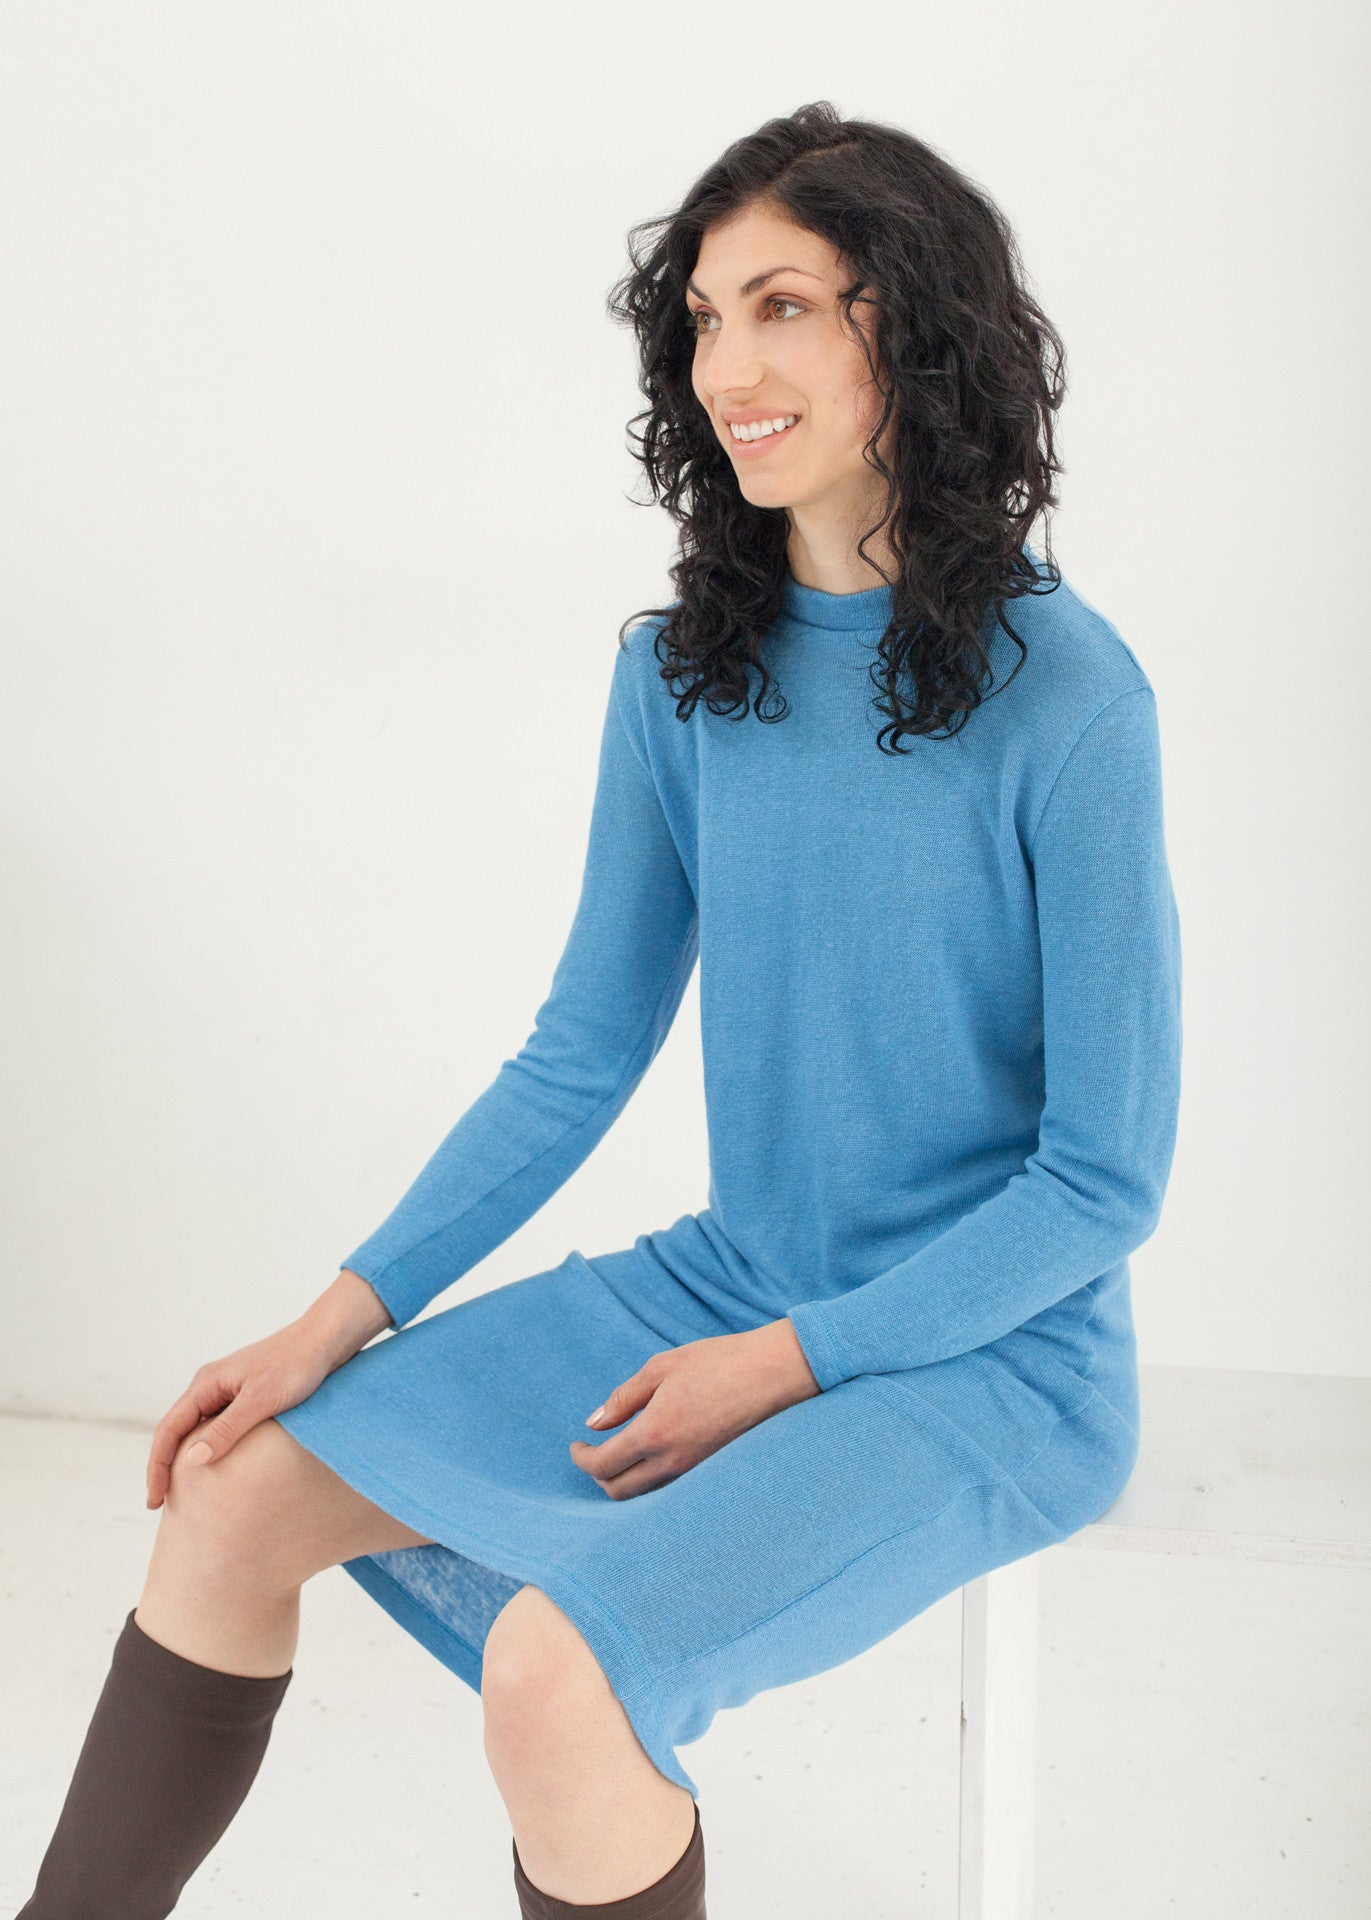 Park - hemp sweater dress